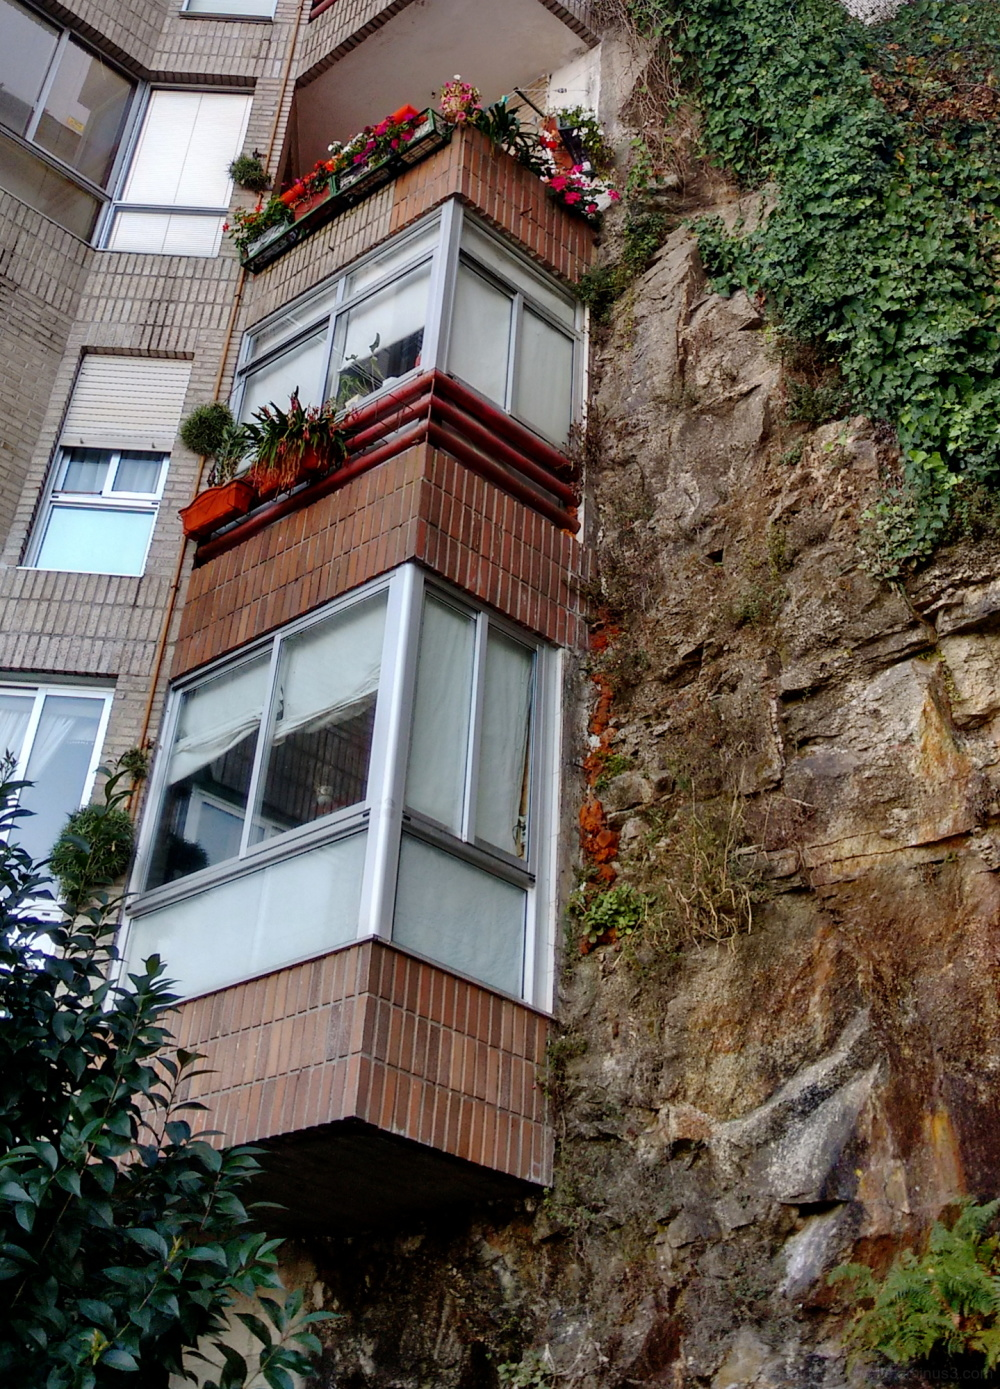 Balconies and rock